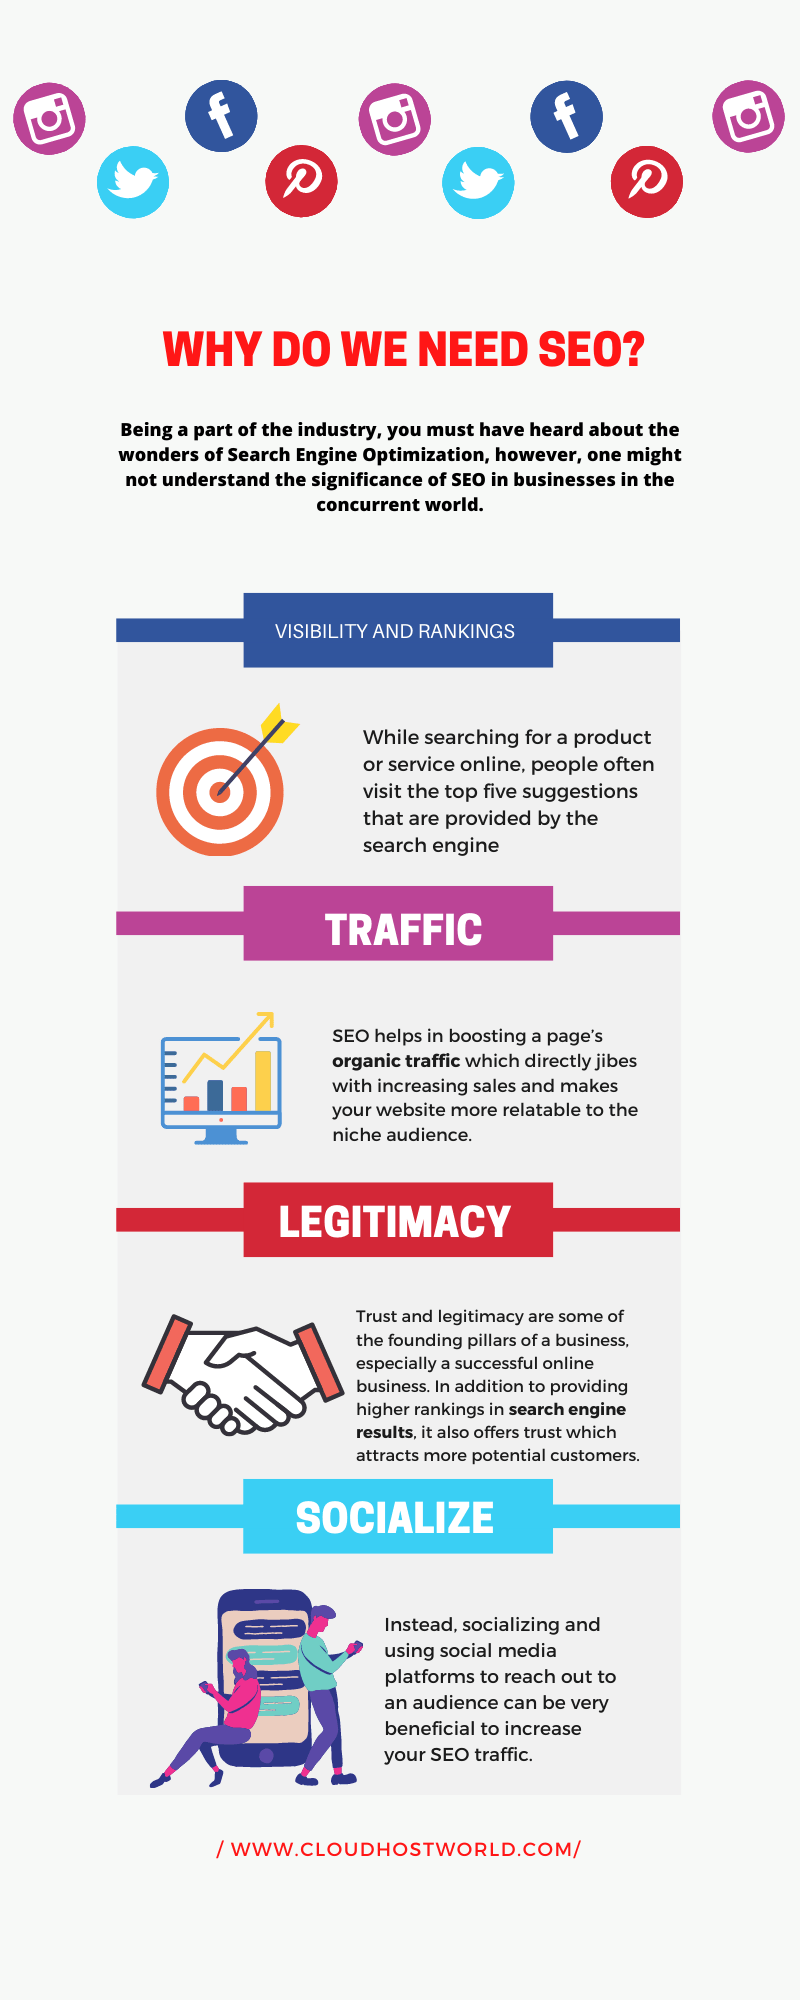 5 Ways To Organically Increase Your Seo & Website Traffic